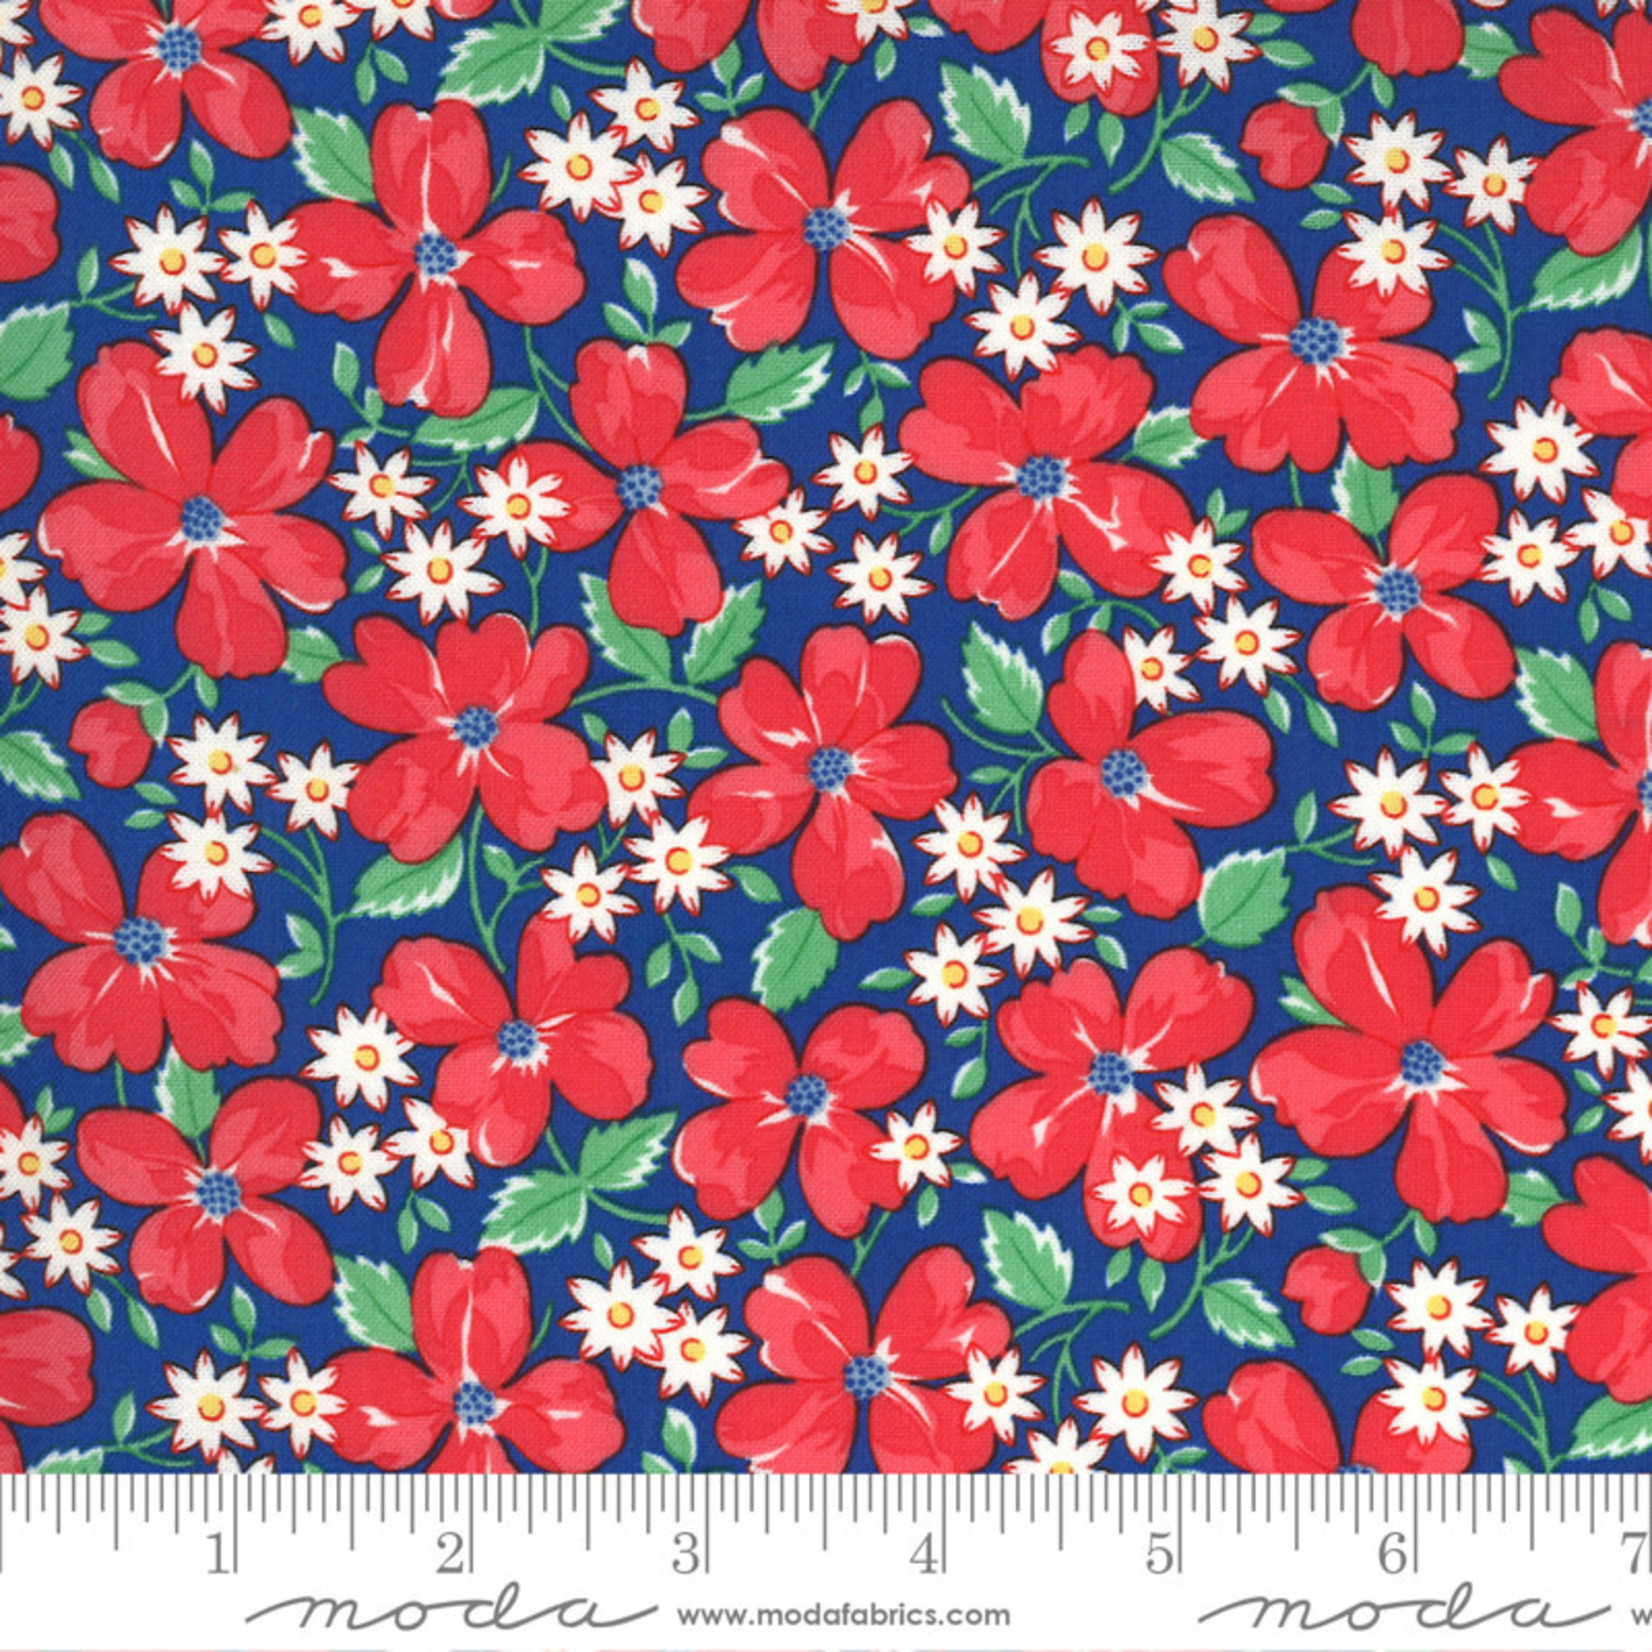 Chloe's Closet 30s Playtime, Garden Party Floral, Bluebell 33590-17 $0.20 per cm or $20/m